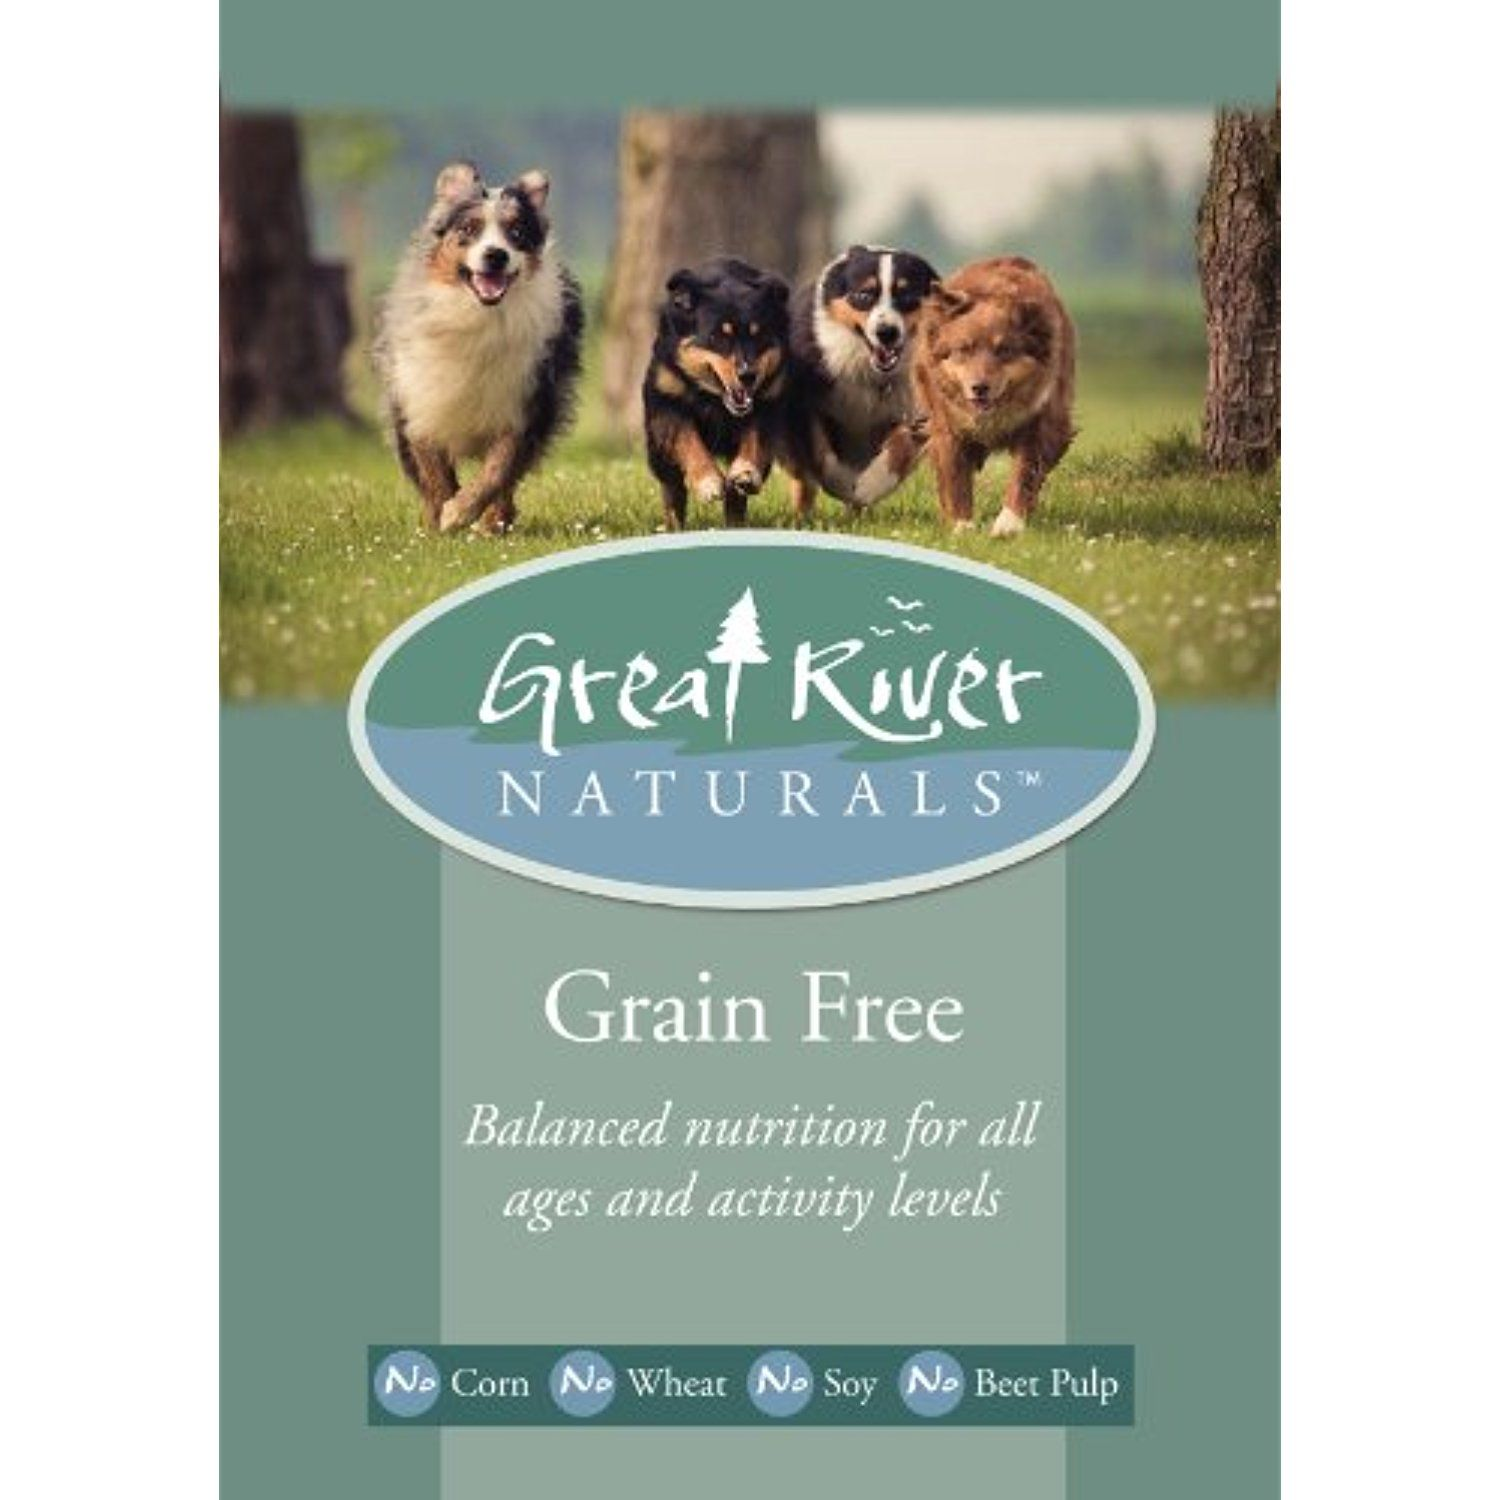 Great River Naturals Grain Free Pet Food, 14-Pound @ If you want to ...